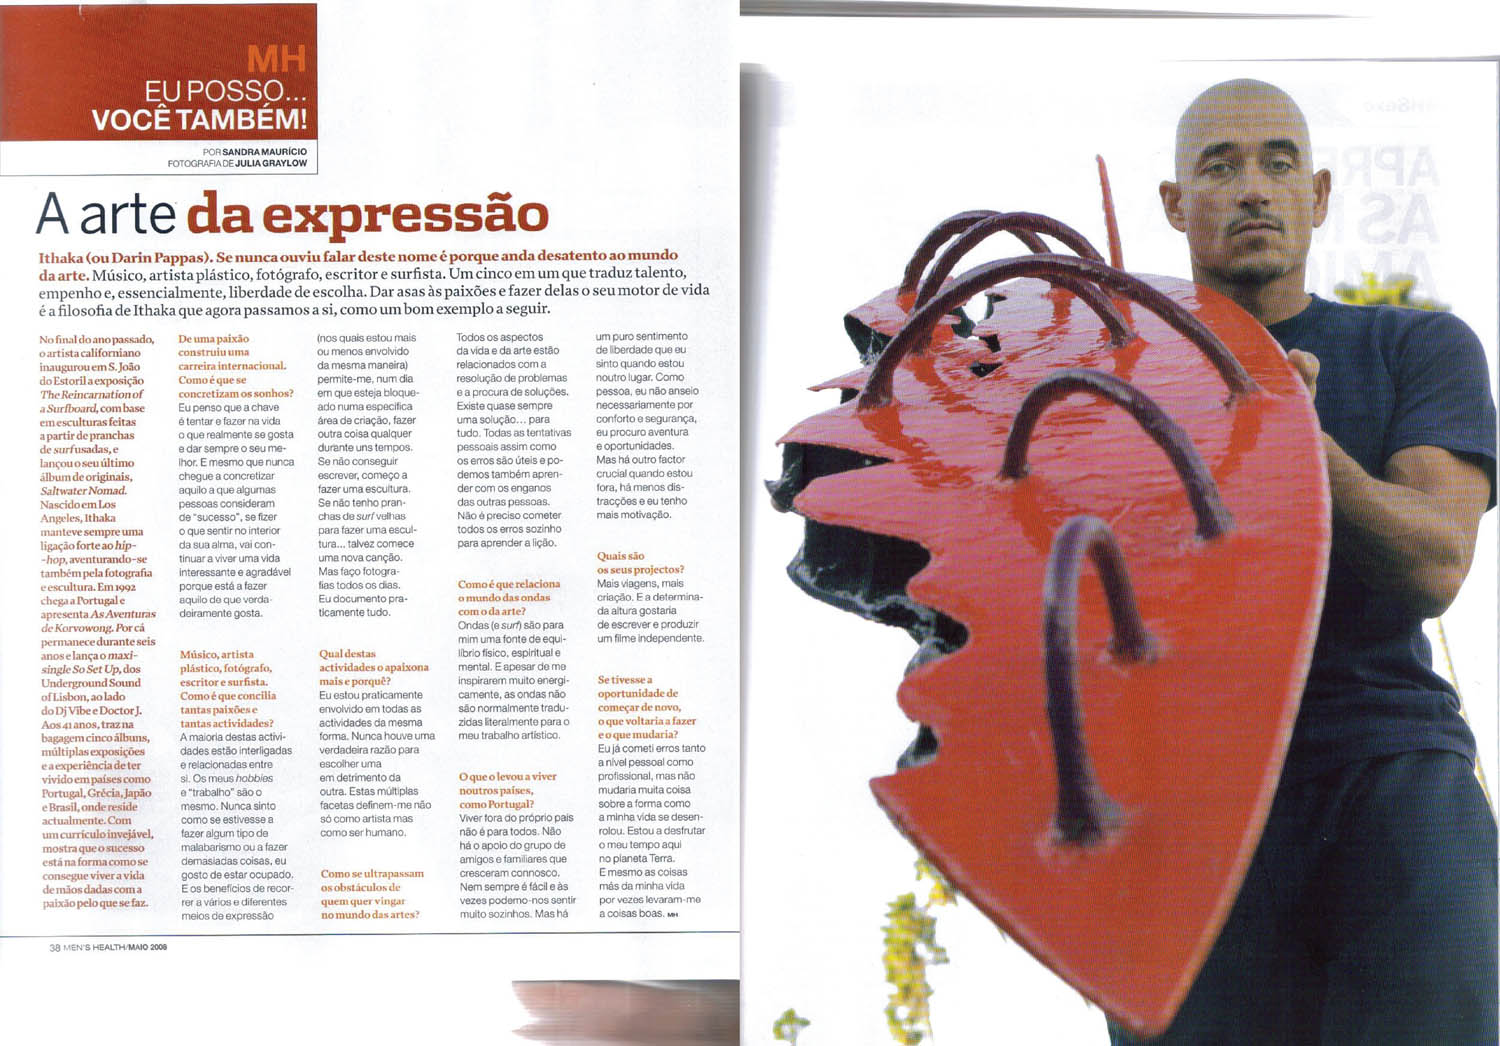 686fe14cff 12 Aug Ithaka featured on Men s Health magazine